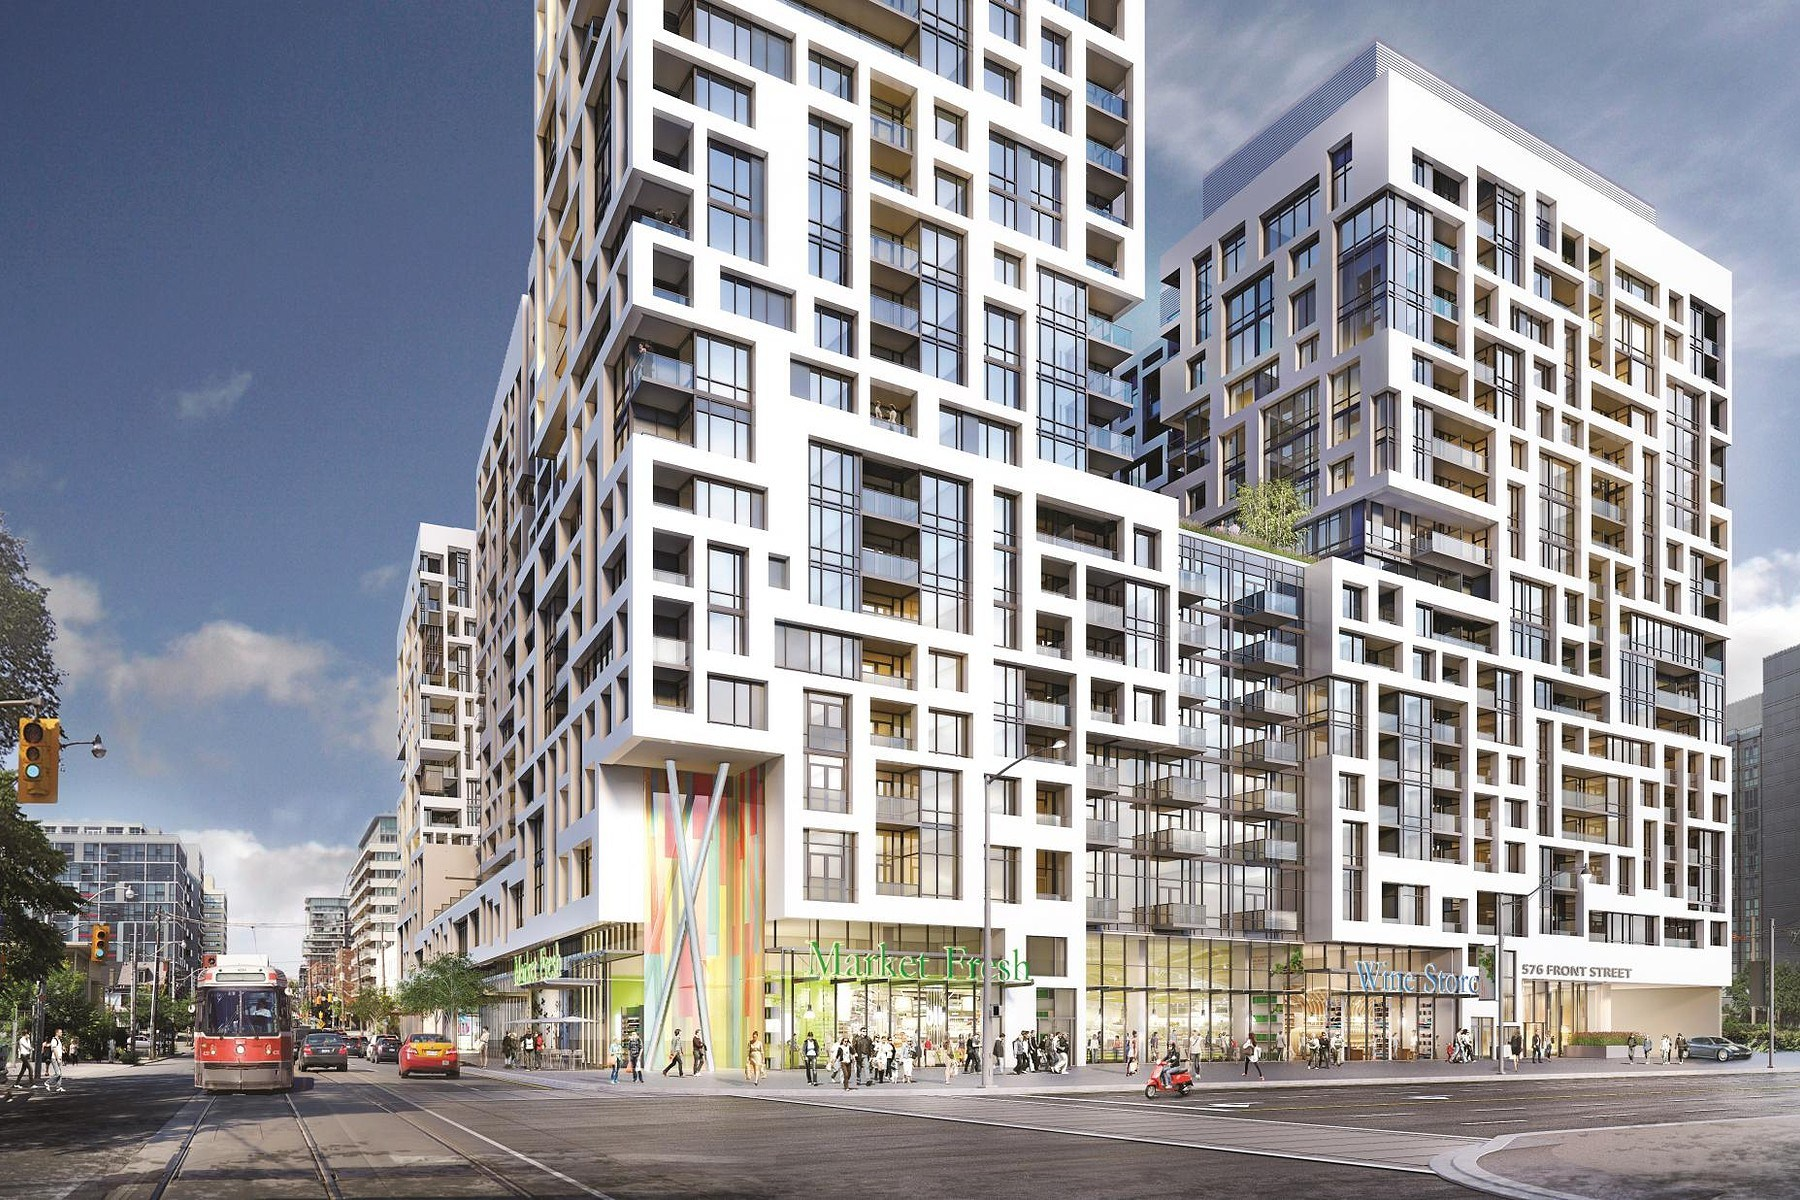 Concept art for Minto Condos showing 2 geometric buildings with thick white lines and blue windows.